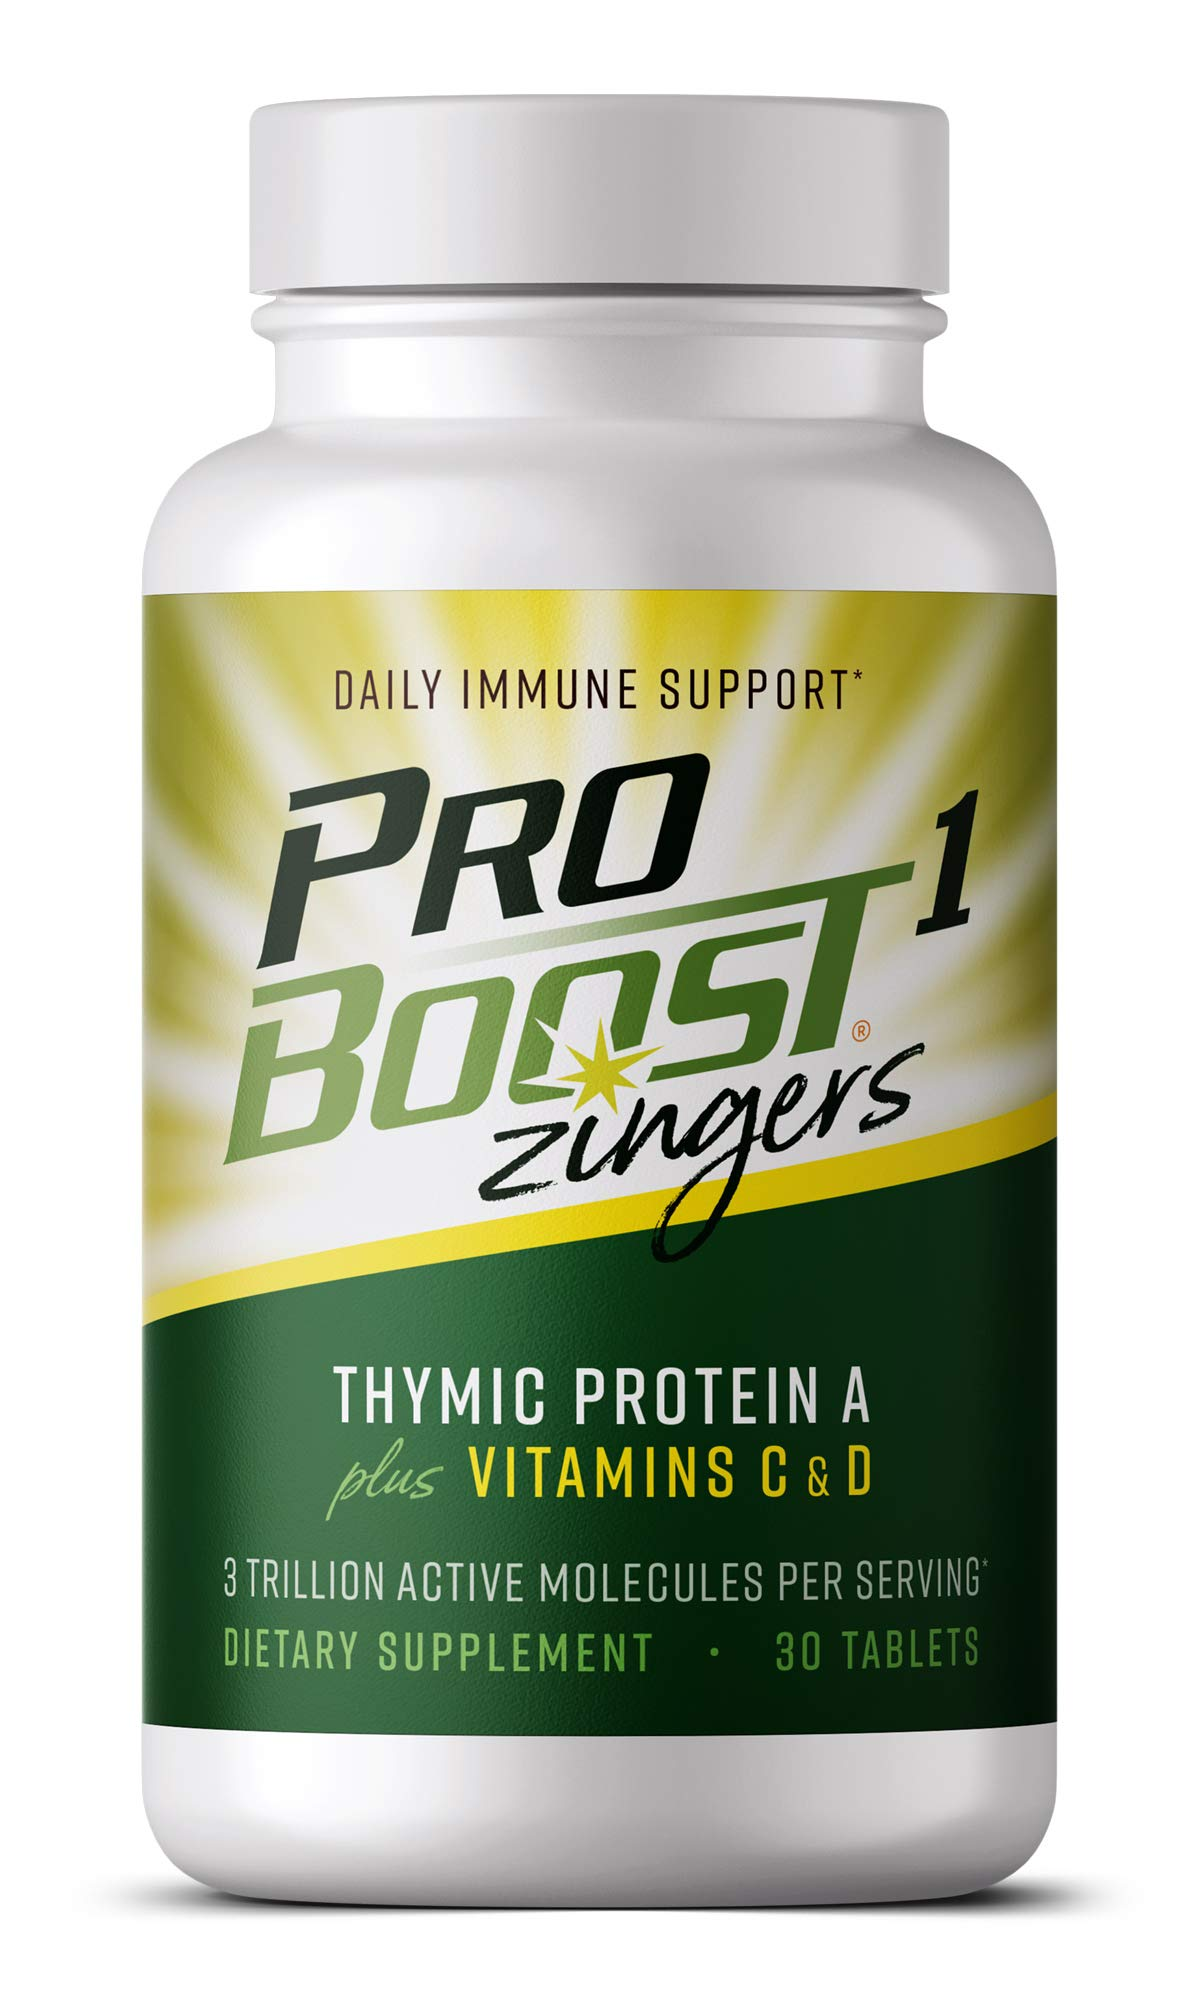 ProBoost 1 Zingers, Thymic Protein A Plus Vitamin C & Vitamin D Sublingual Tablets (30 Count) - Daily Immune Support Supplement by Genicel